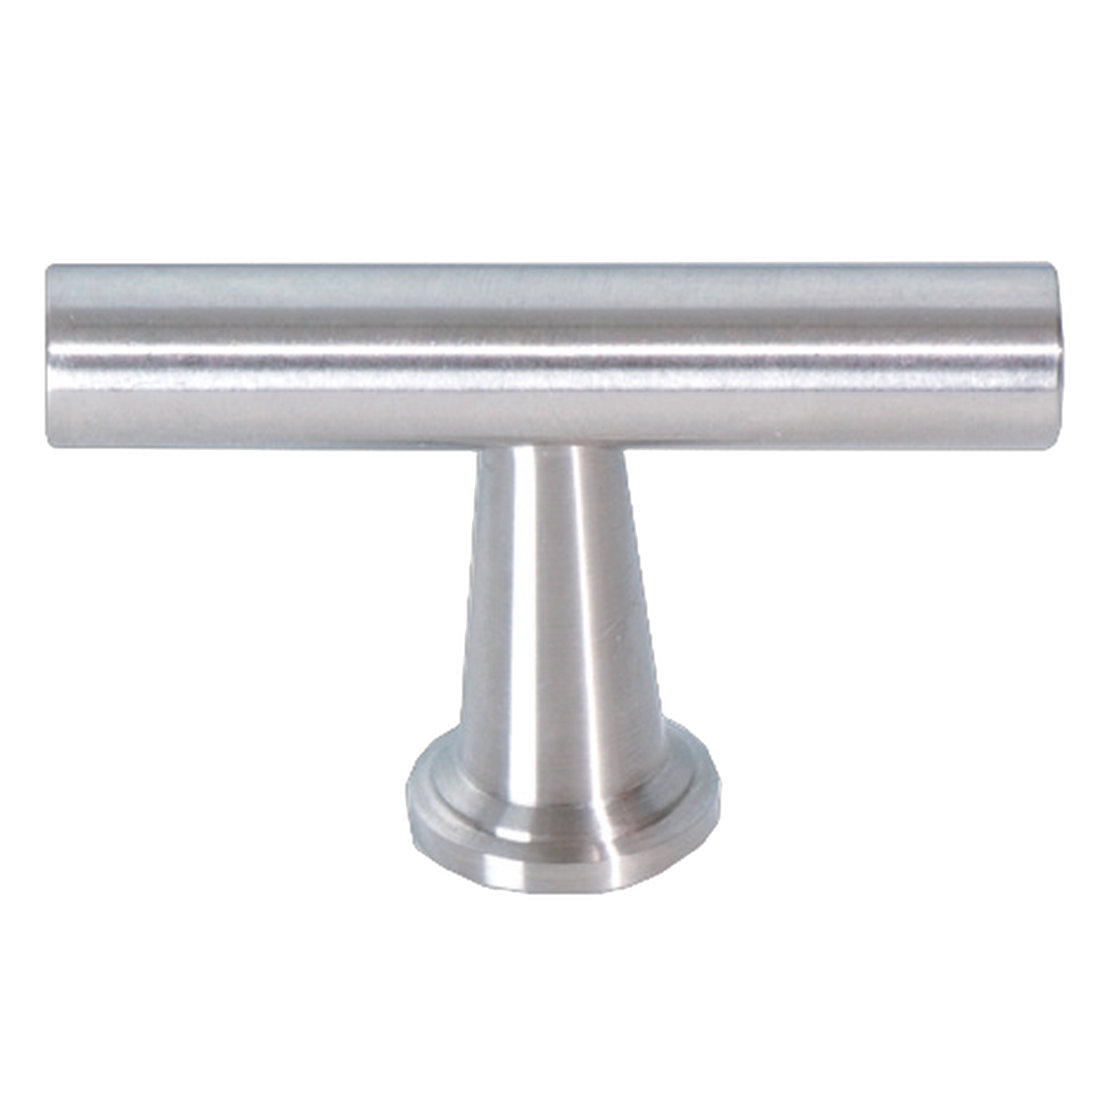 FURNITURE KNOB CARUS ø 11MM, SATIN STAINLESS STEEL